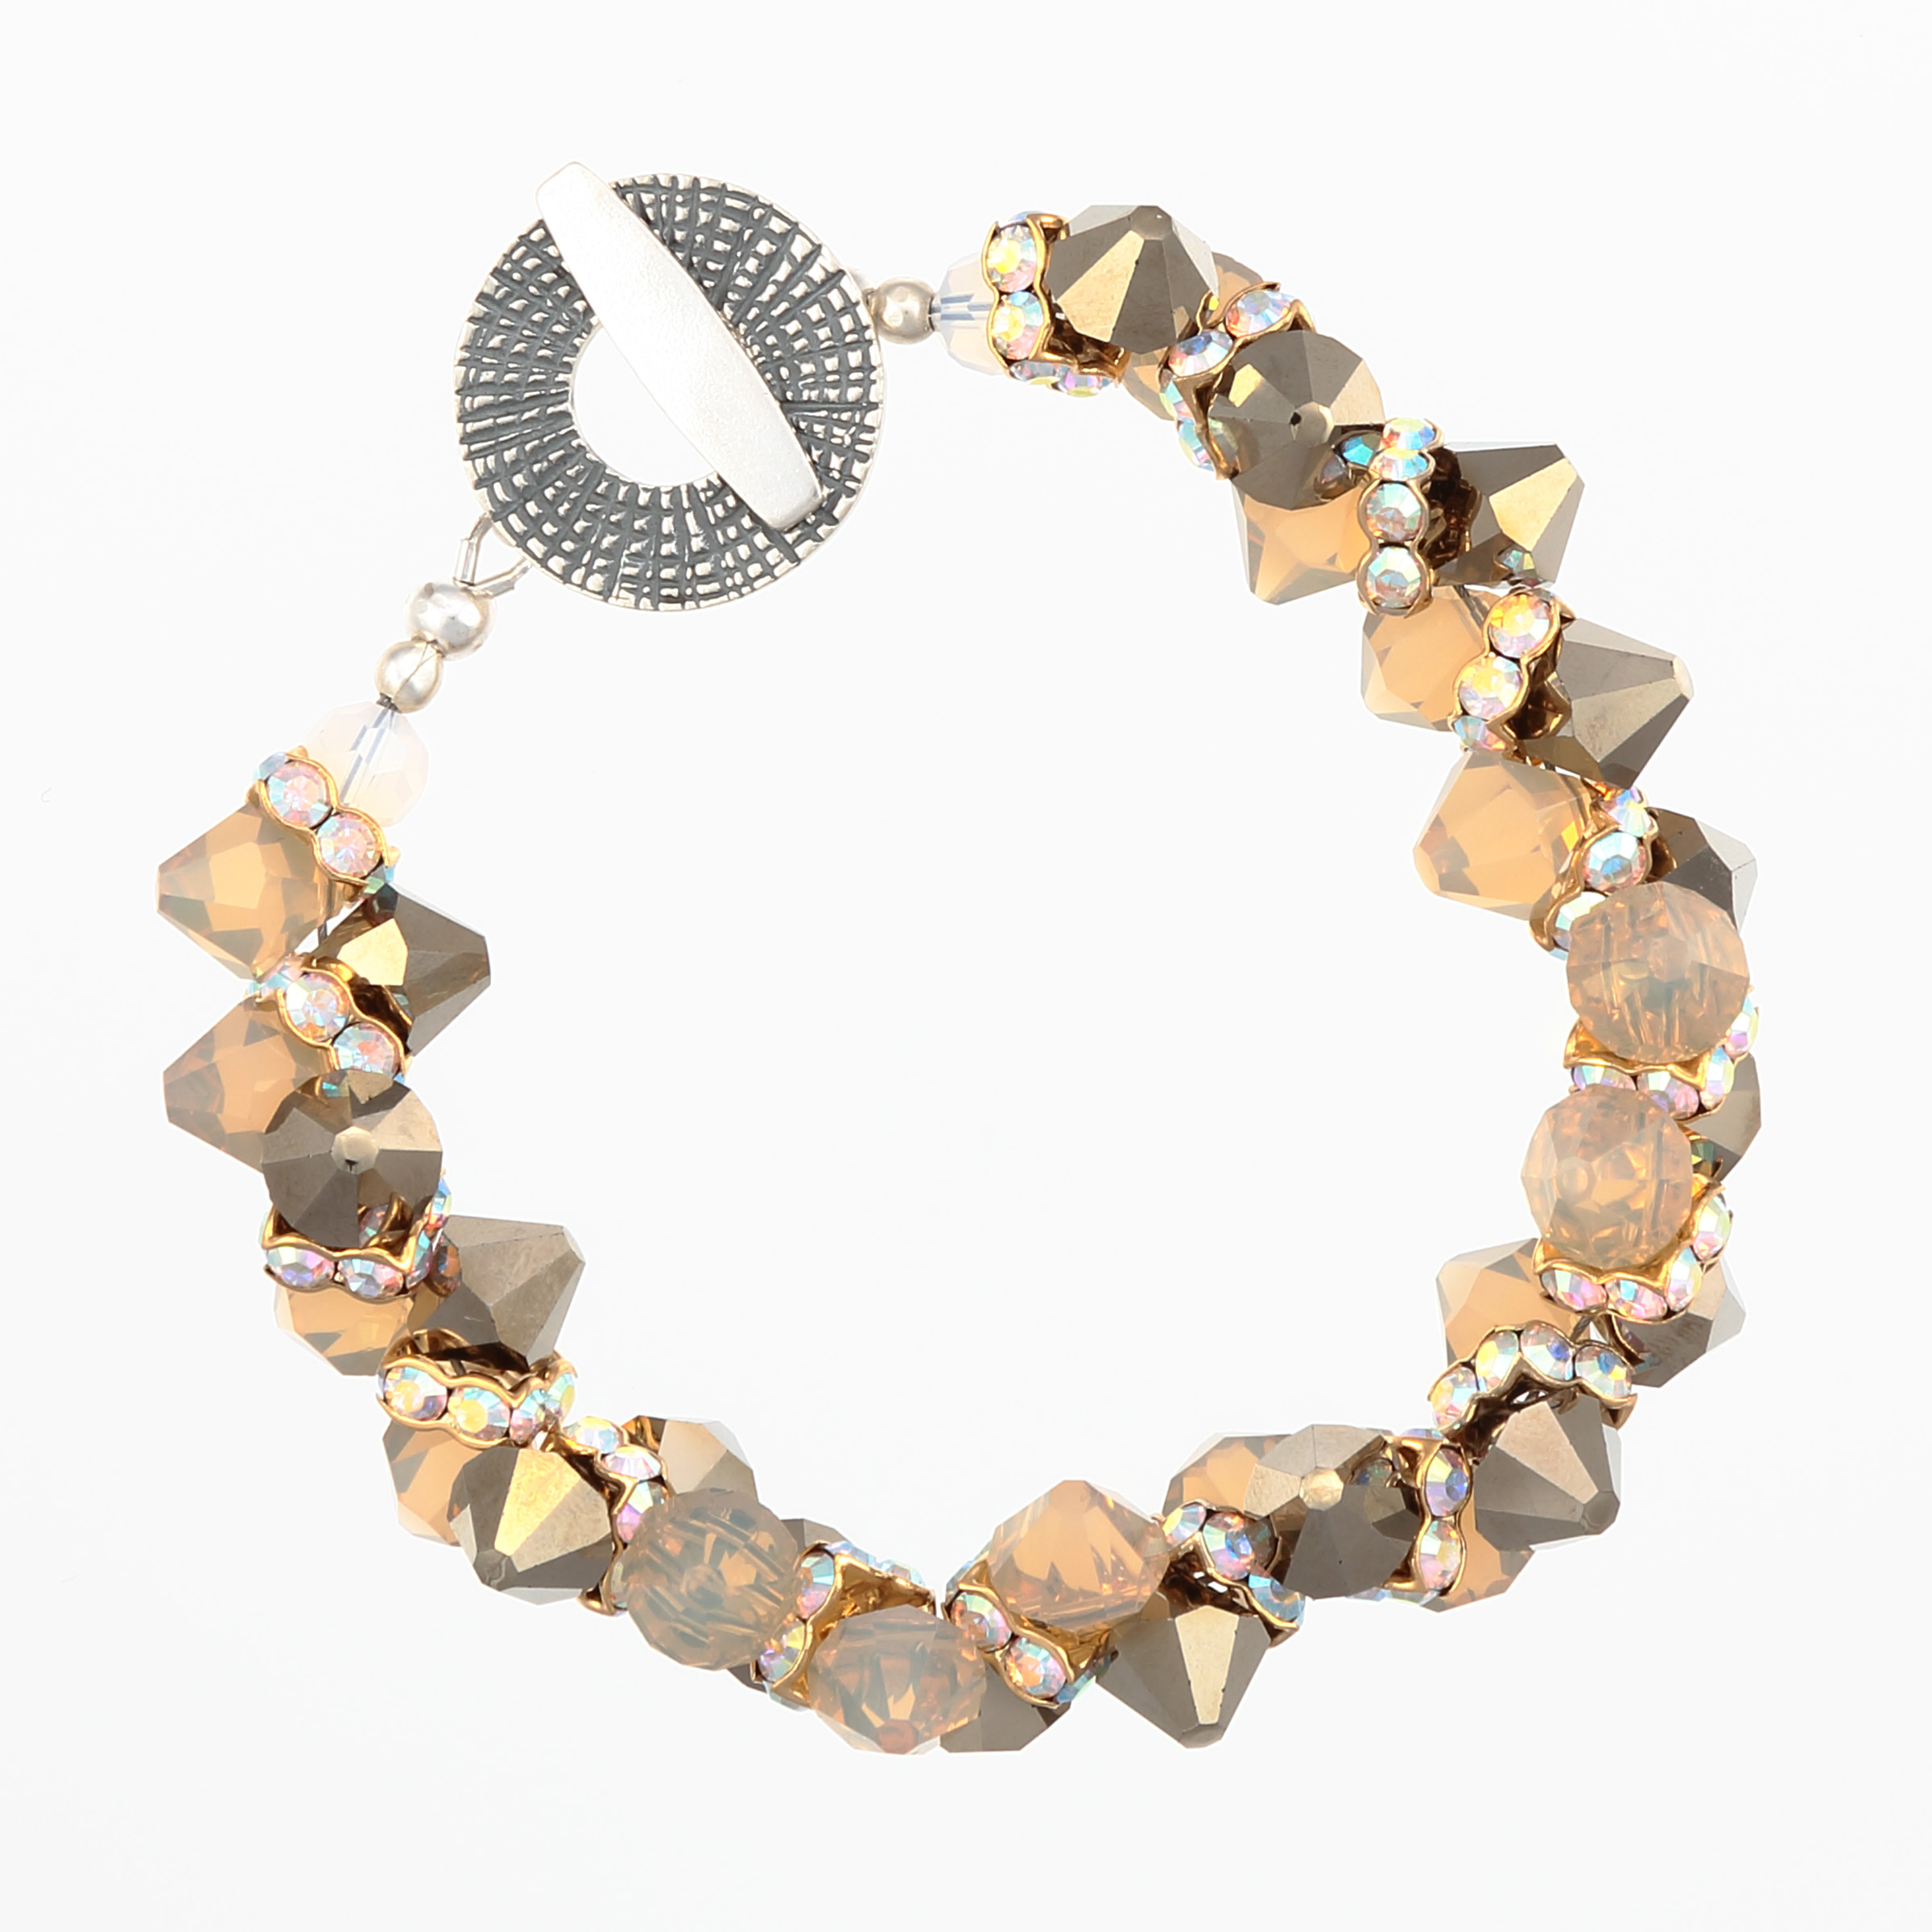 DIAMONDS IN THE SAND BRACELET- opal beige and metallic Swarovski crystals with unique large sterling silver clasp